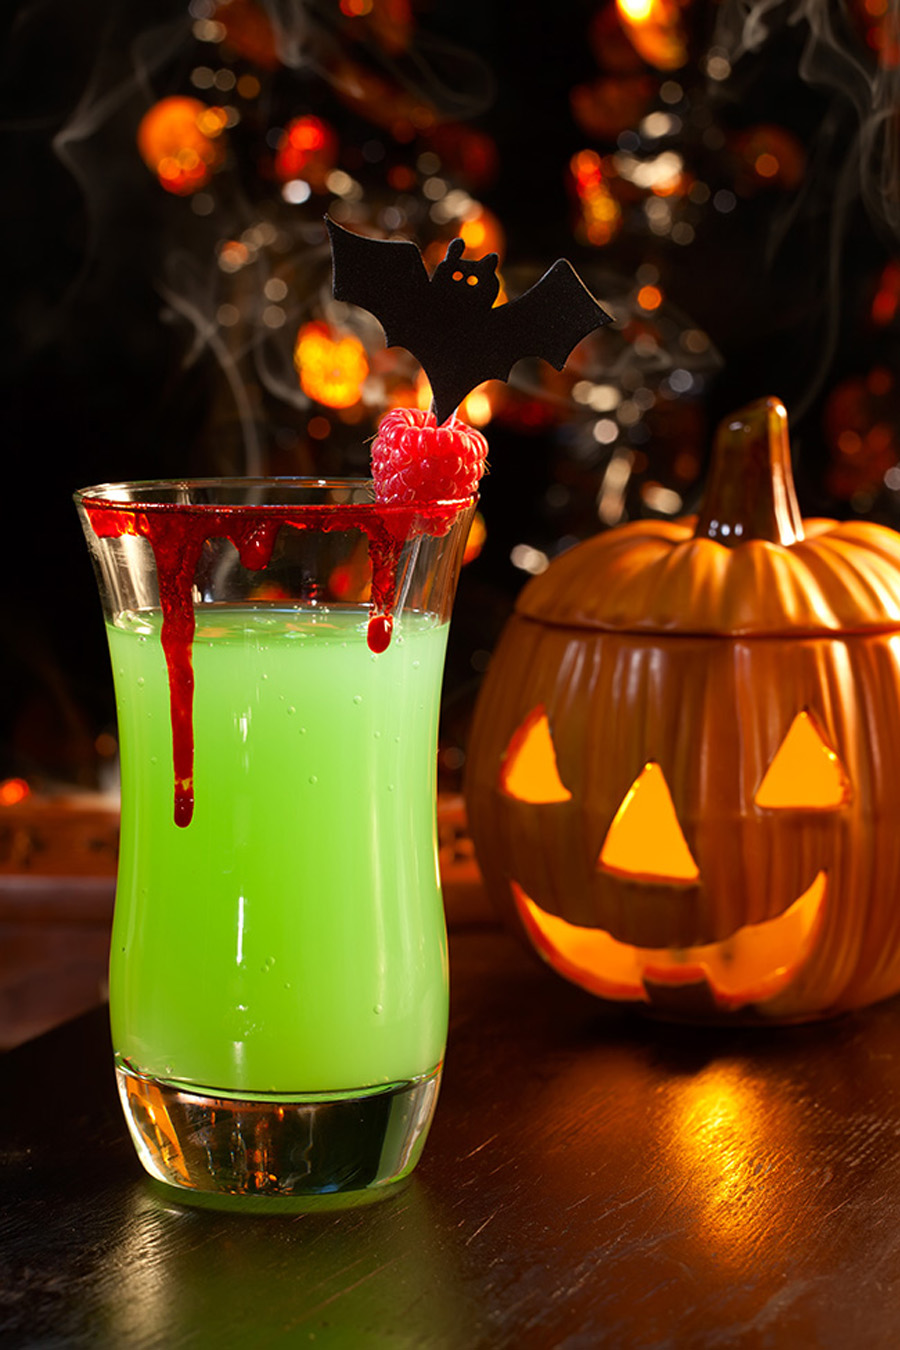 so here you go six haunting cocktail recipes that will surely please everyone